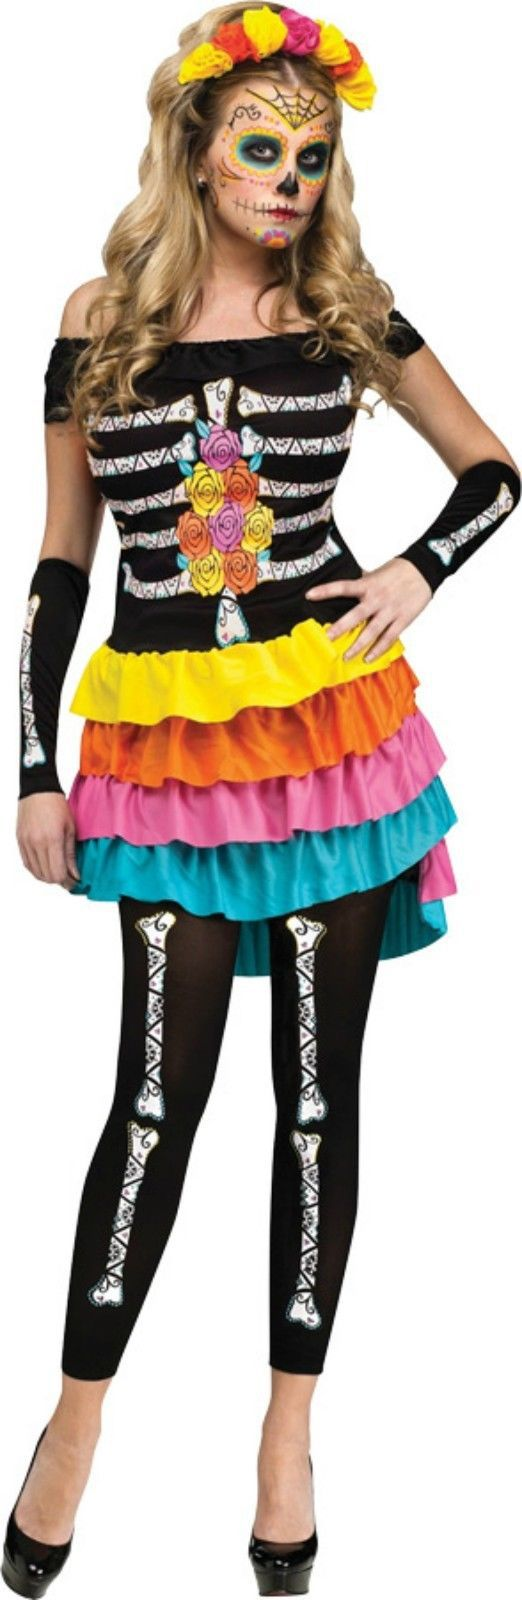 Primary image for Sexy Womens Day of the Dead Halloween Costume Med 2-8